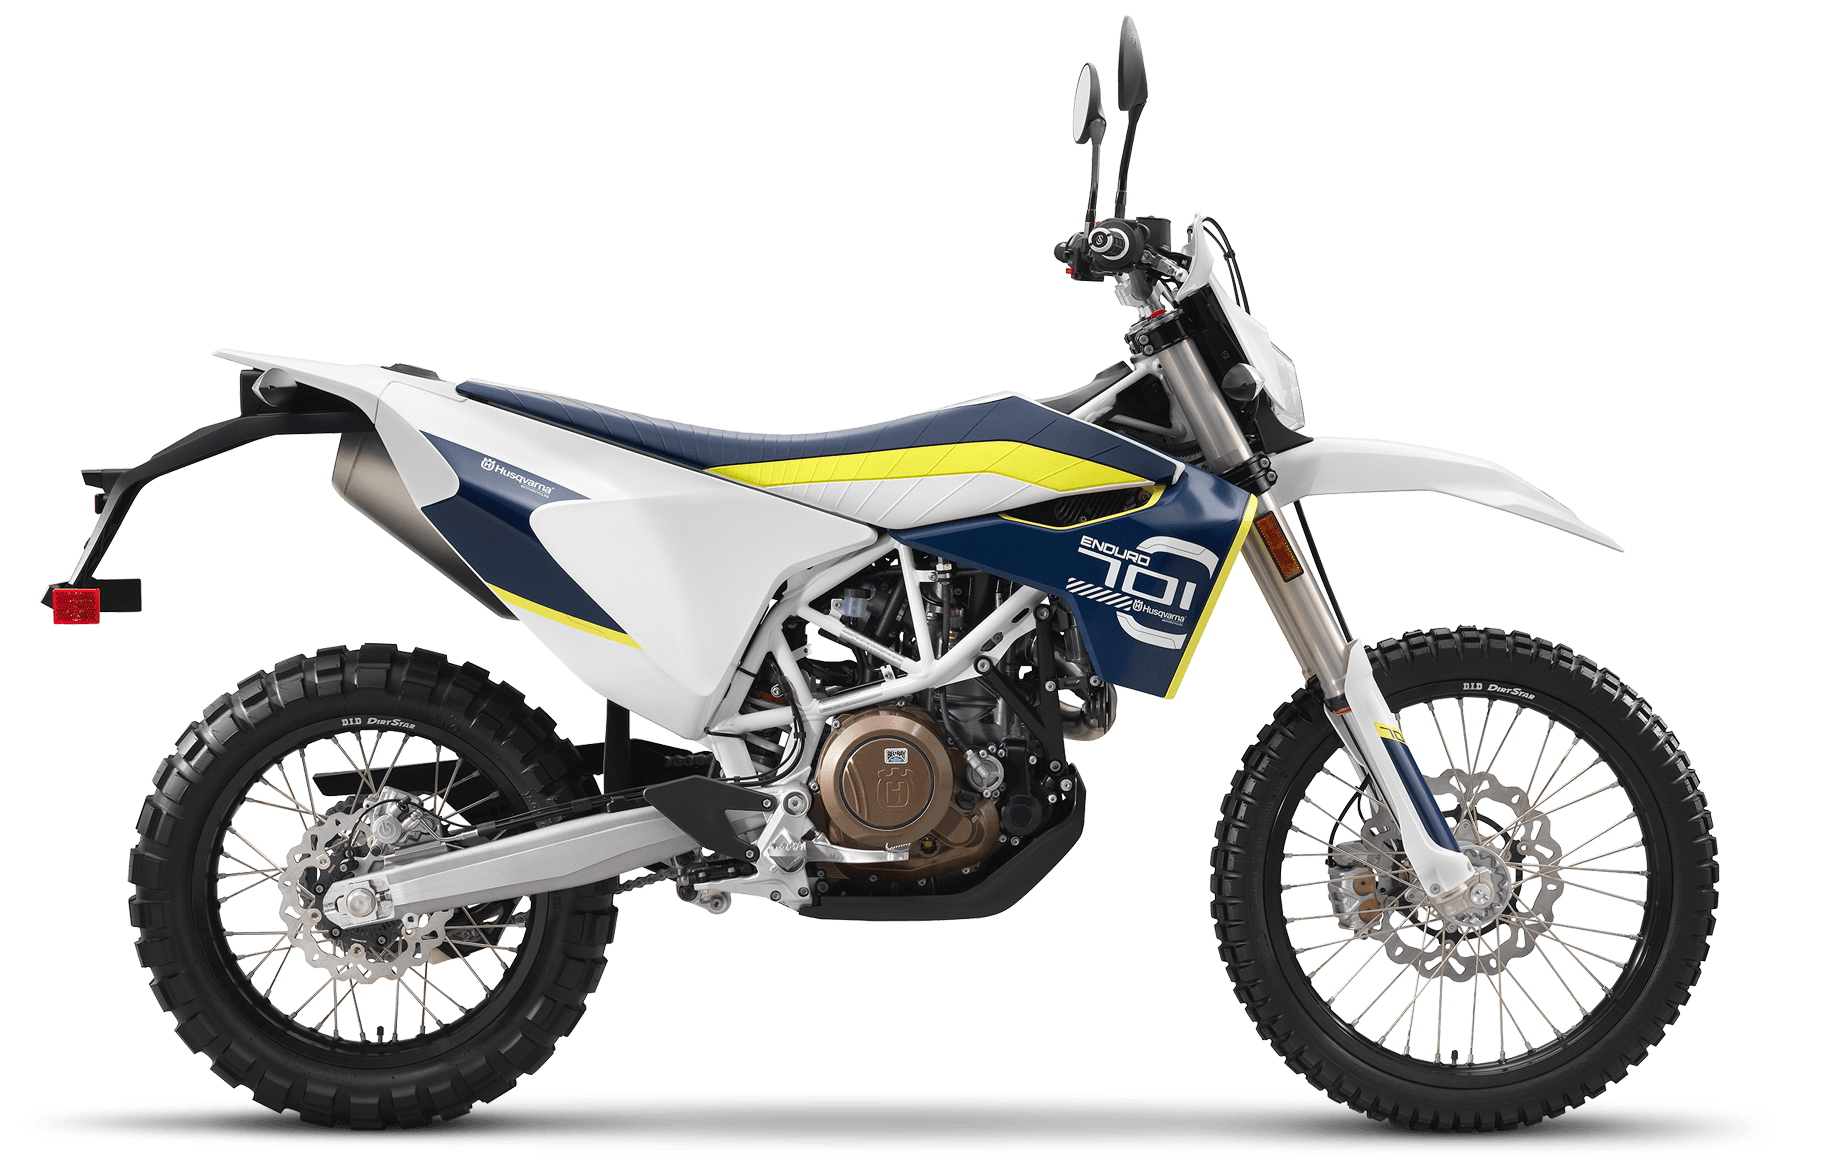 new 2016 husqvarna 701 enduro motorcycles in paramount ca. Black Bedroom Furniture Sets. Home Design Ideas